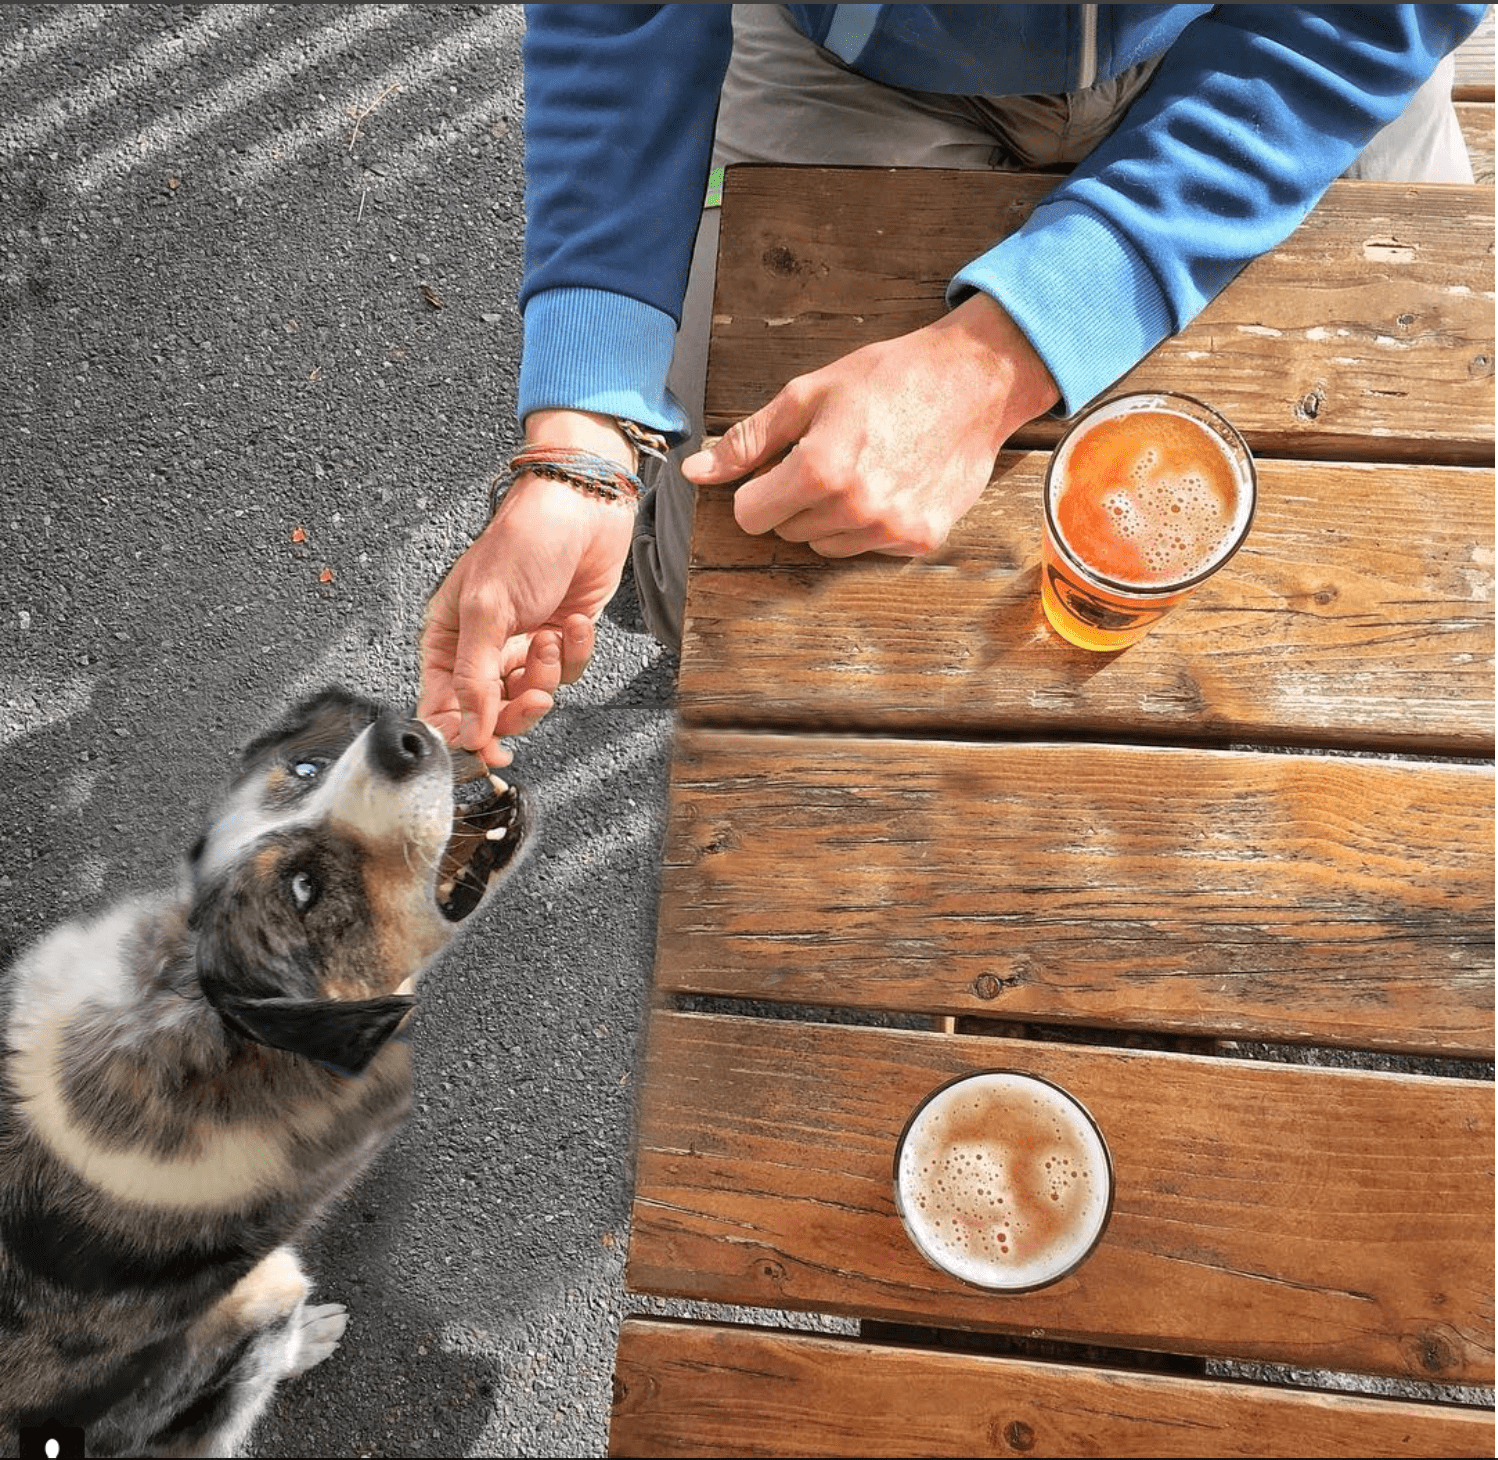 Sora snags a treat while Jen and Dave enjoy the beer garden at the Hop and Hound in Bothell